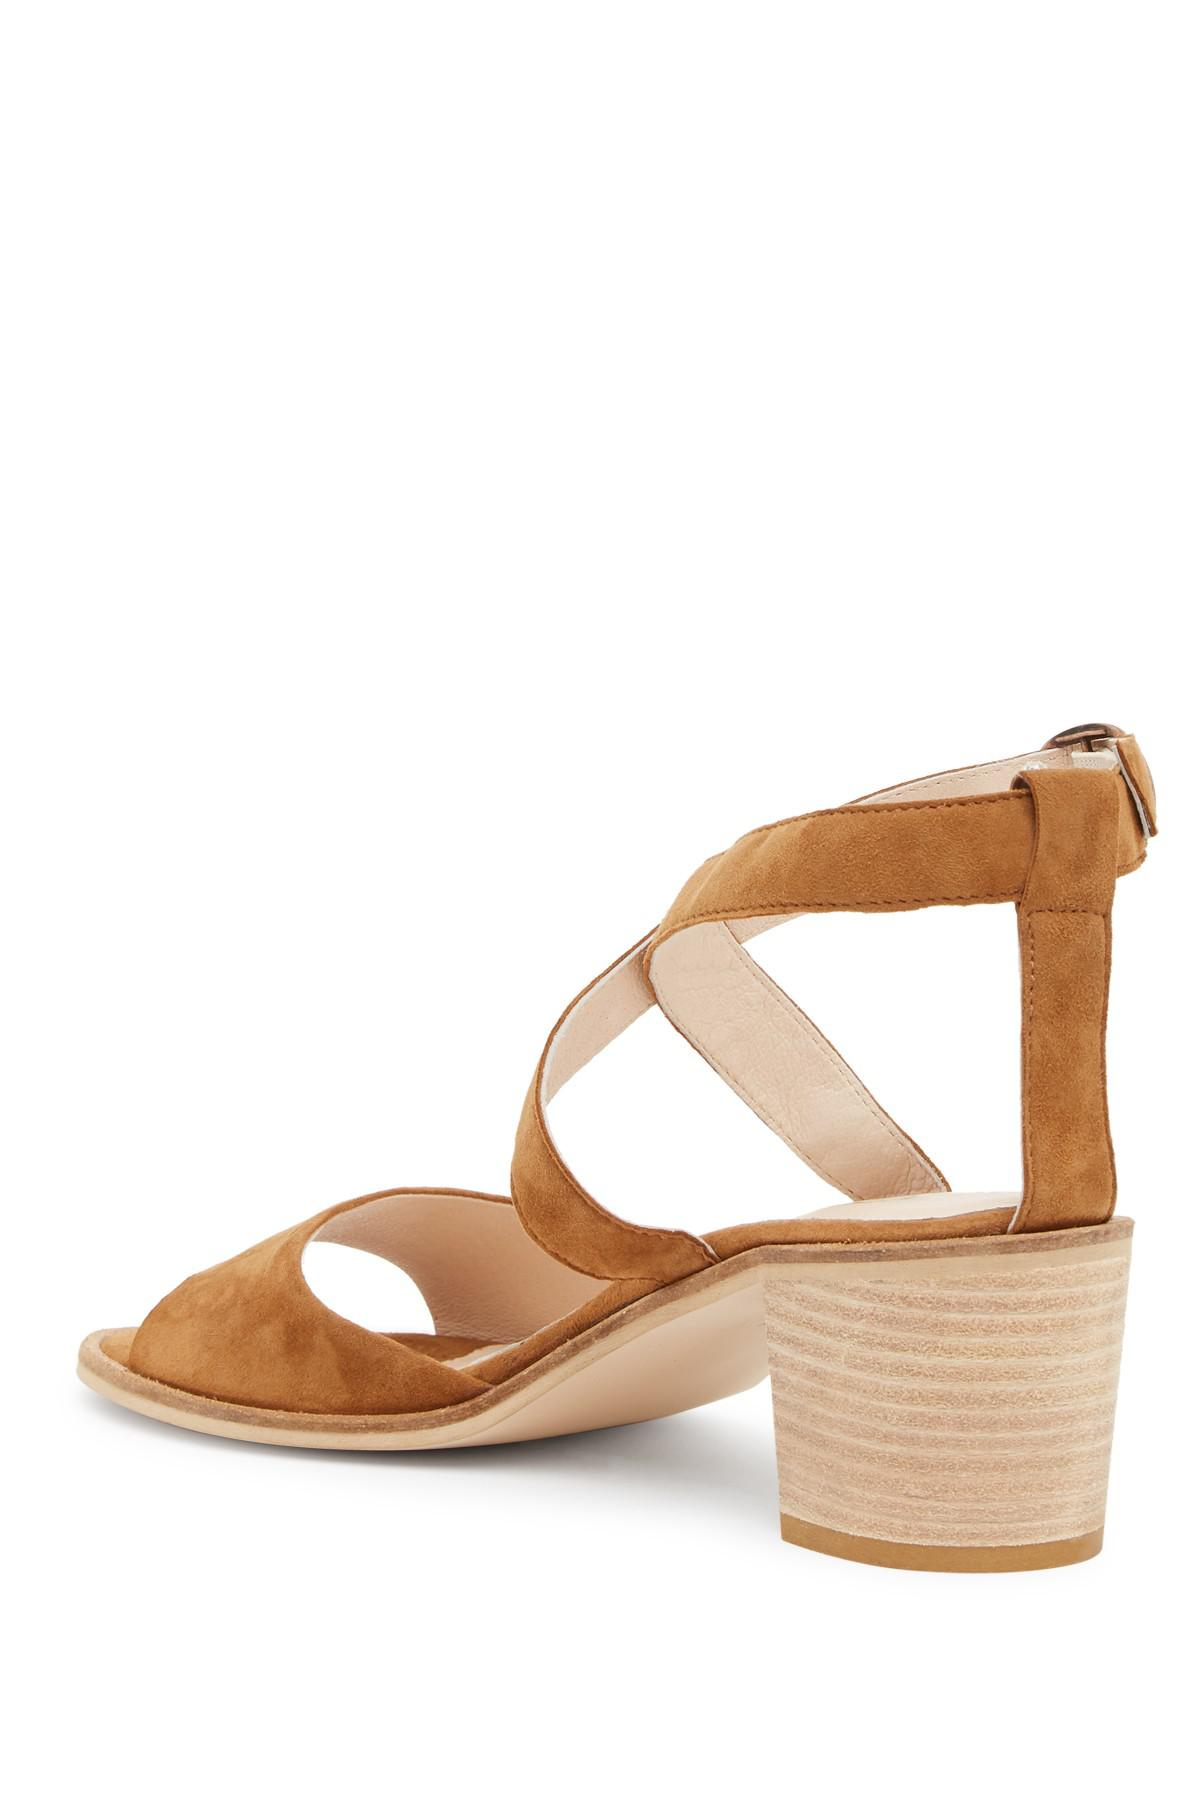 292dcabb8868 Lyst - Rebels Madison Sandal in Brown